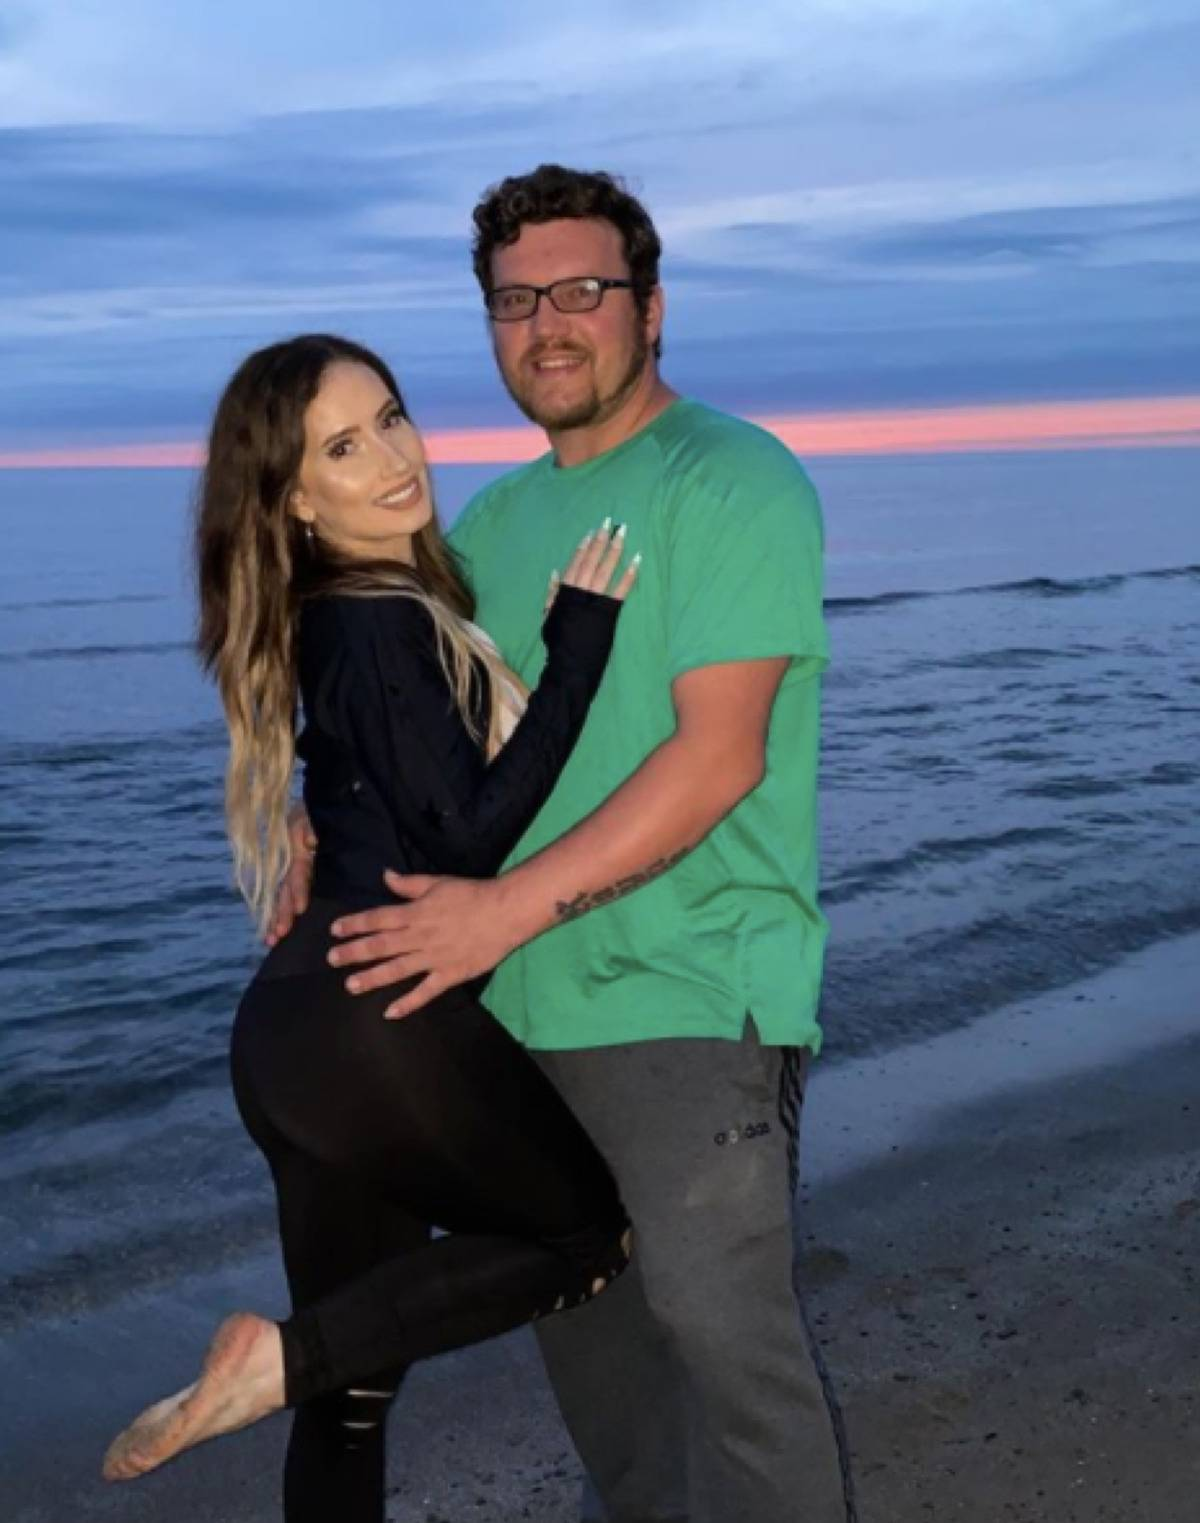 Alicia posing with her husband on the beach